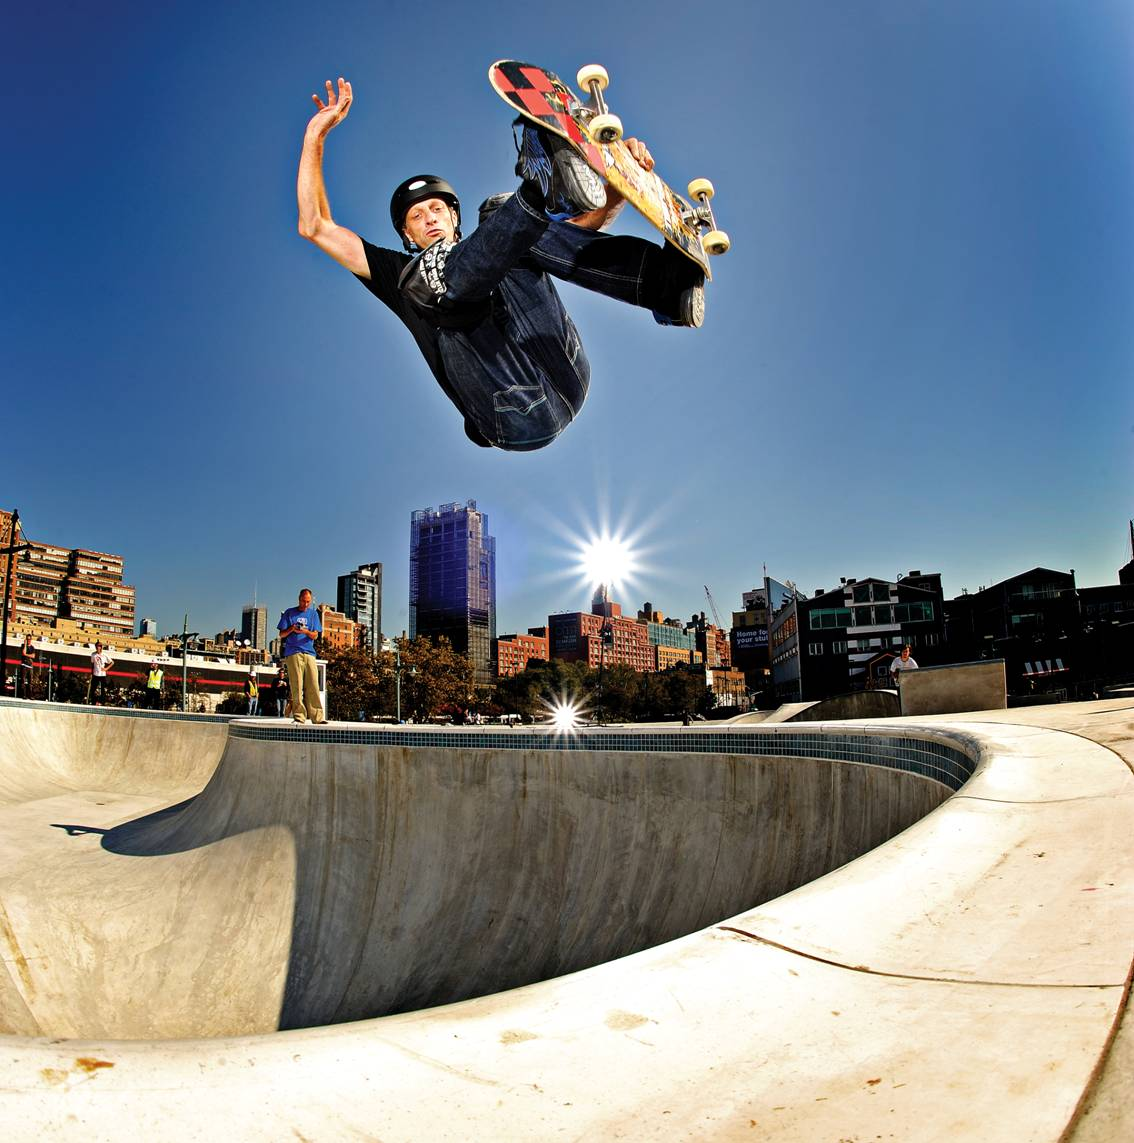 Tony Hawk doing his thing // photo courtesy Tony Hawk Inc.